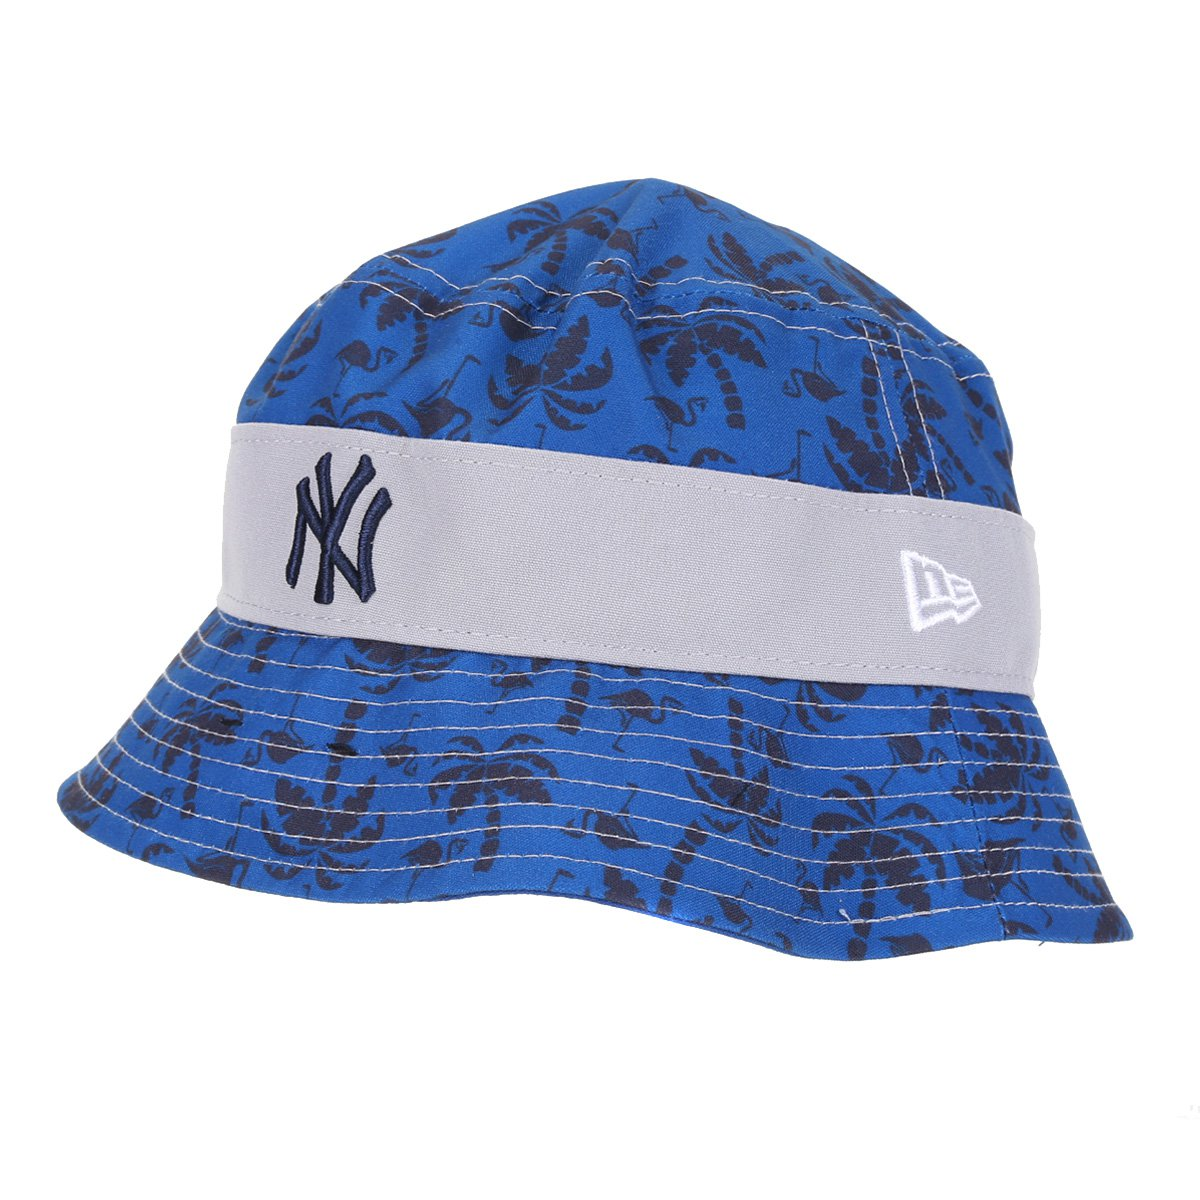 Chapéu Juvenil New Era MLB Stbckt Nelilprint B1 New York Yankees Otc Masculino